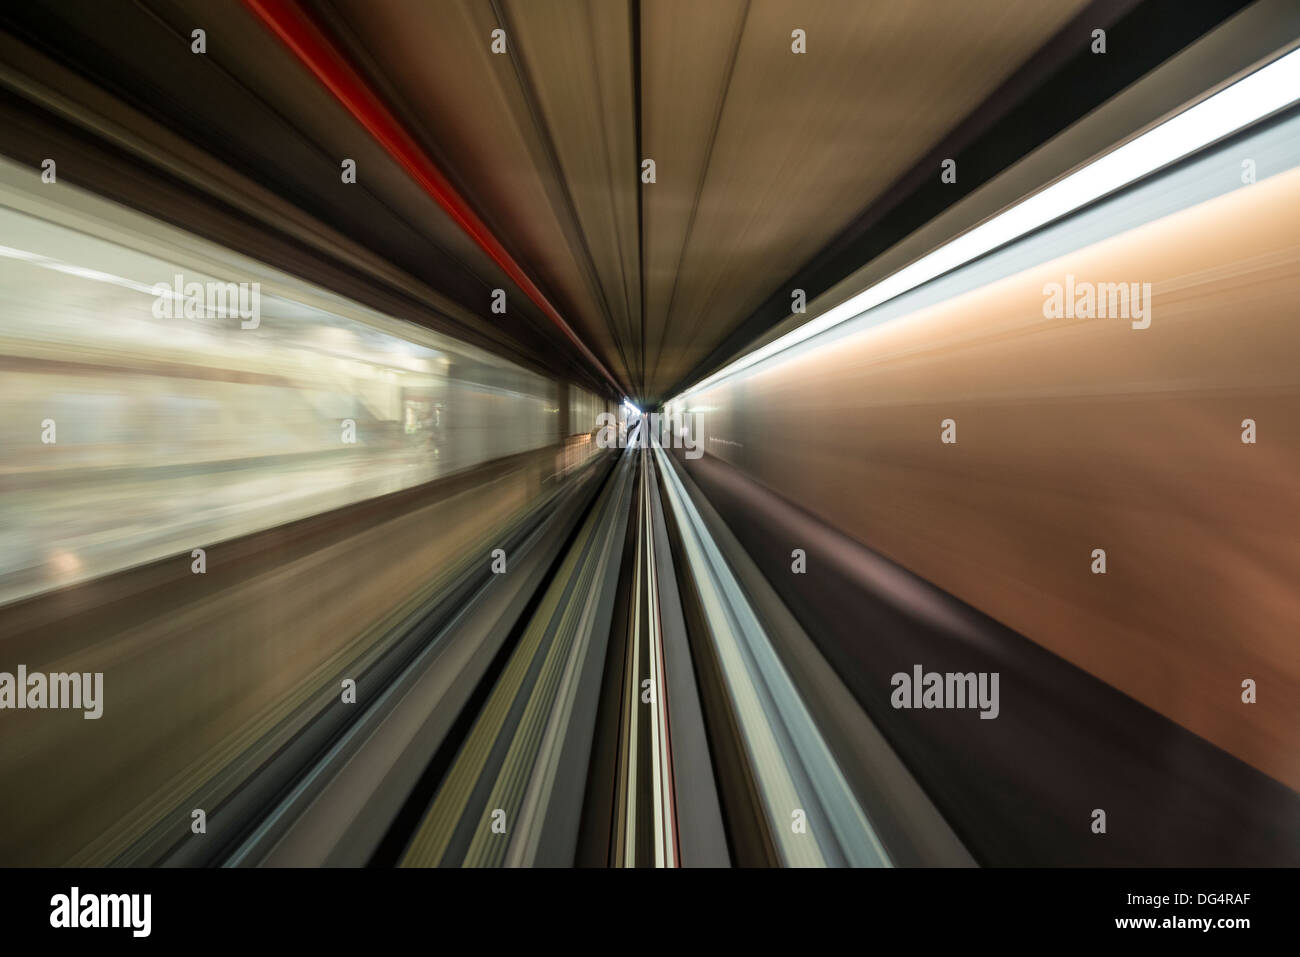 Motion blur in a moving tram - Stock Image